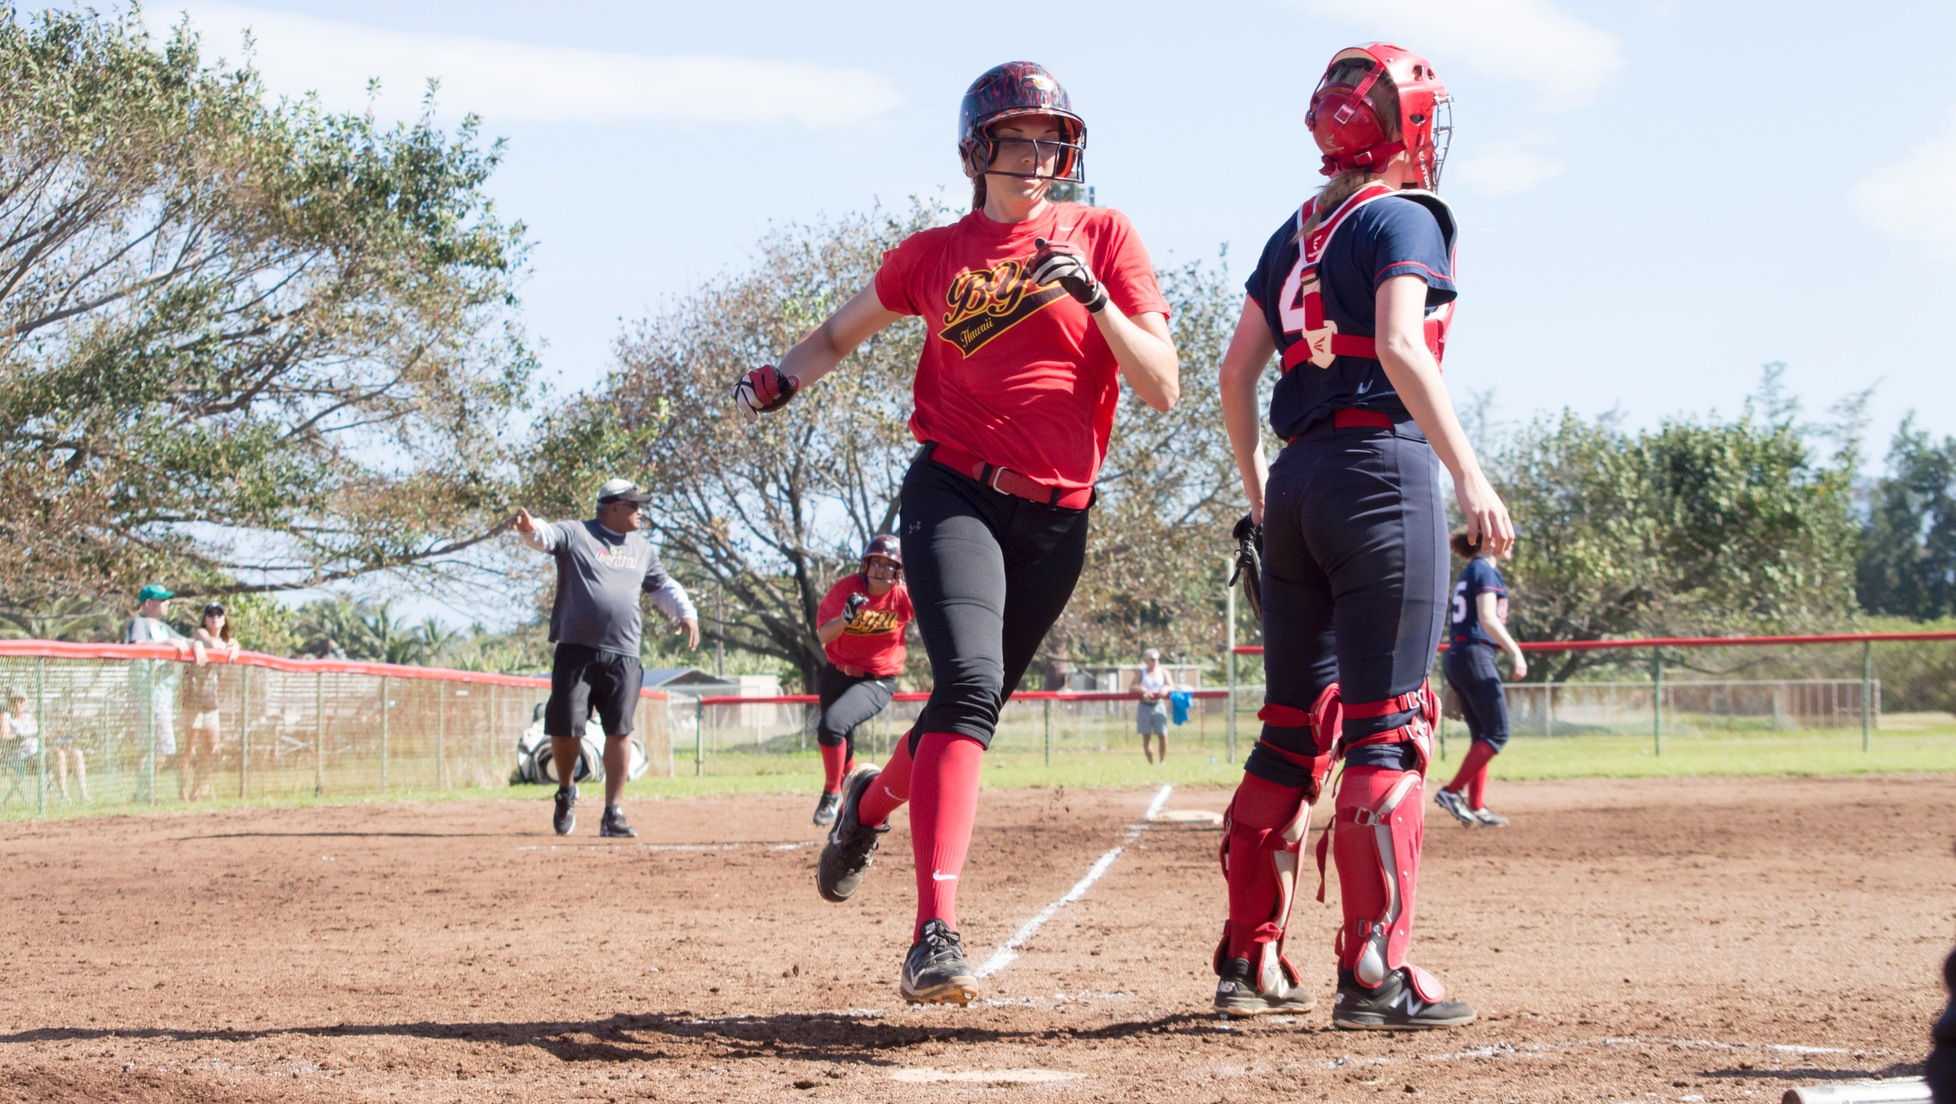 Meghan Wantz and Sarah Captain cross the plate off Lizabelle Talataina's single in the bottom of the seventh inning.